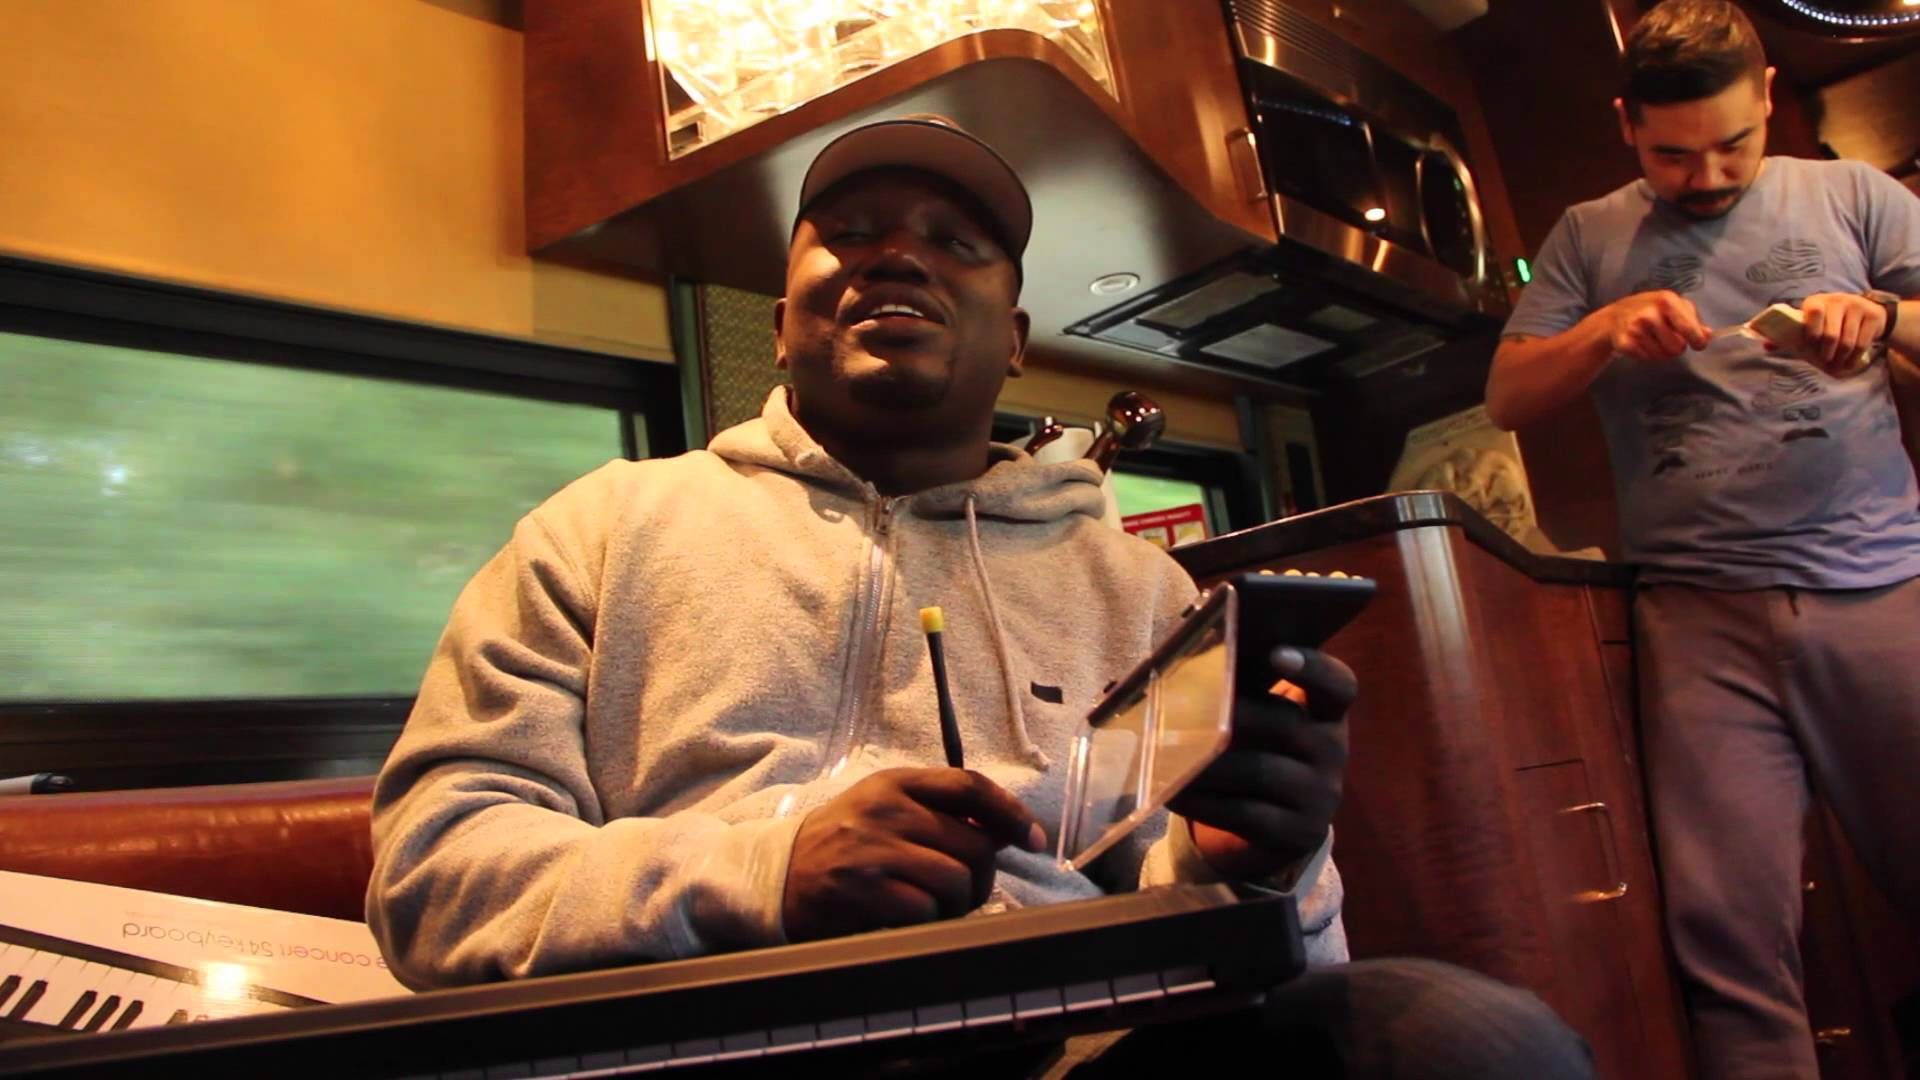 Hannibal Buress Delivers A Comical Restaurant Review Of Cracker Barrel